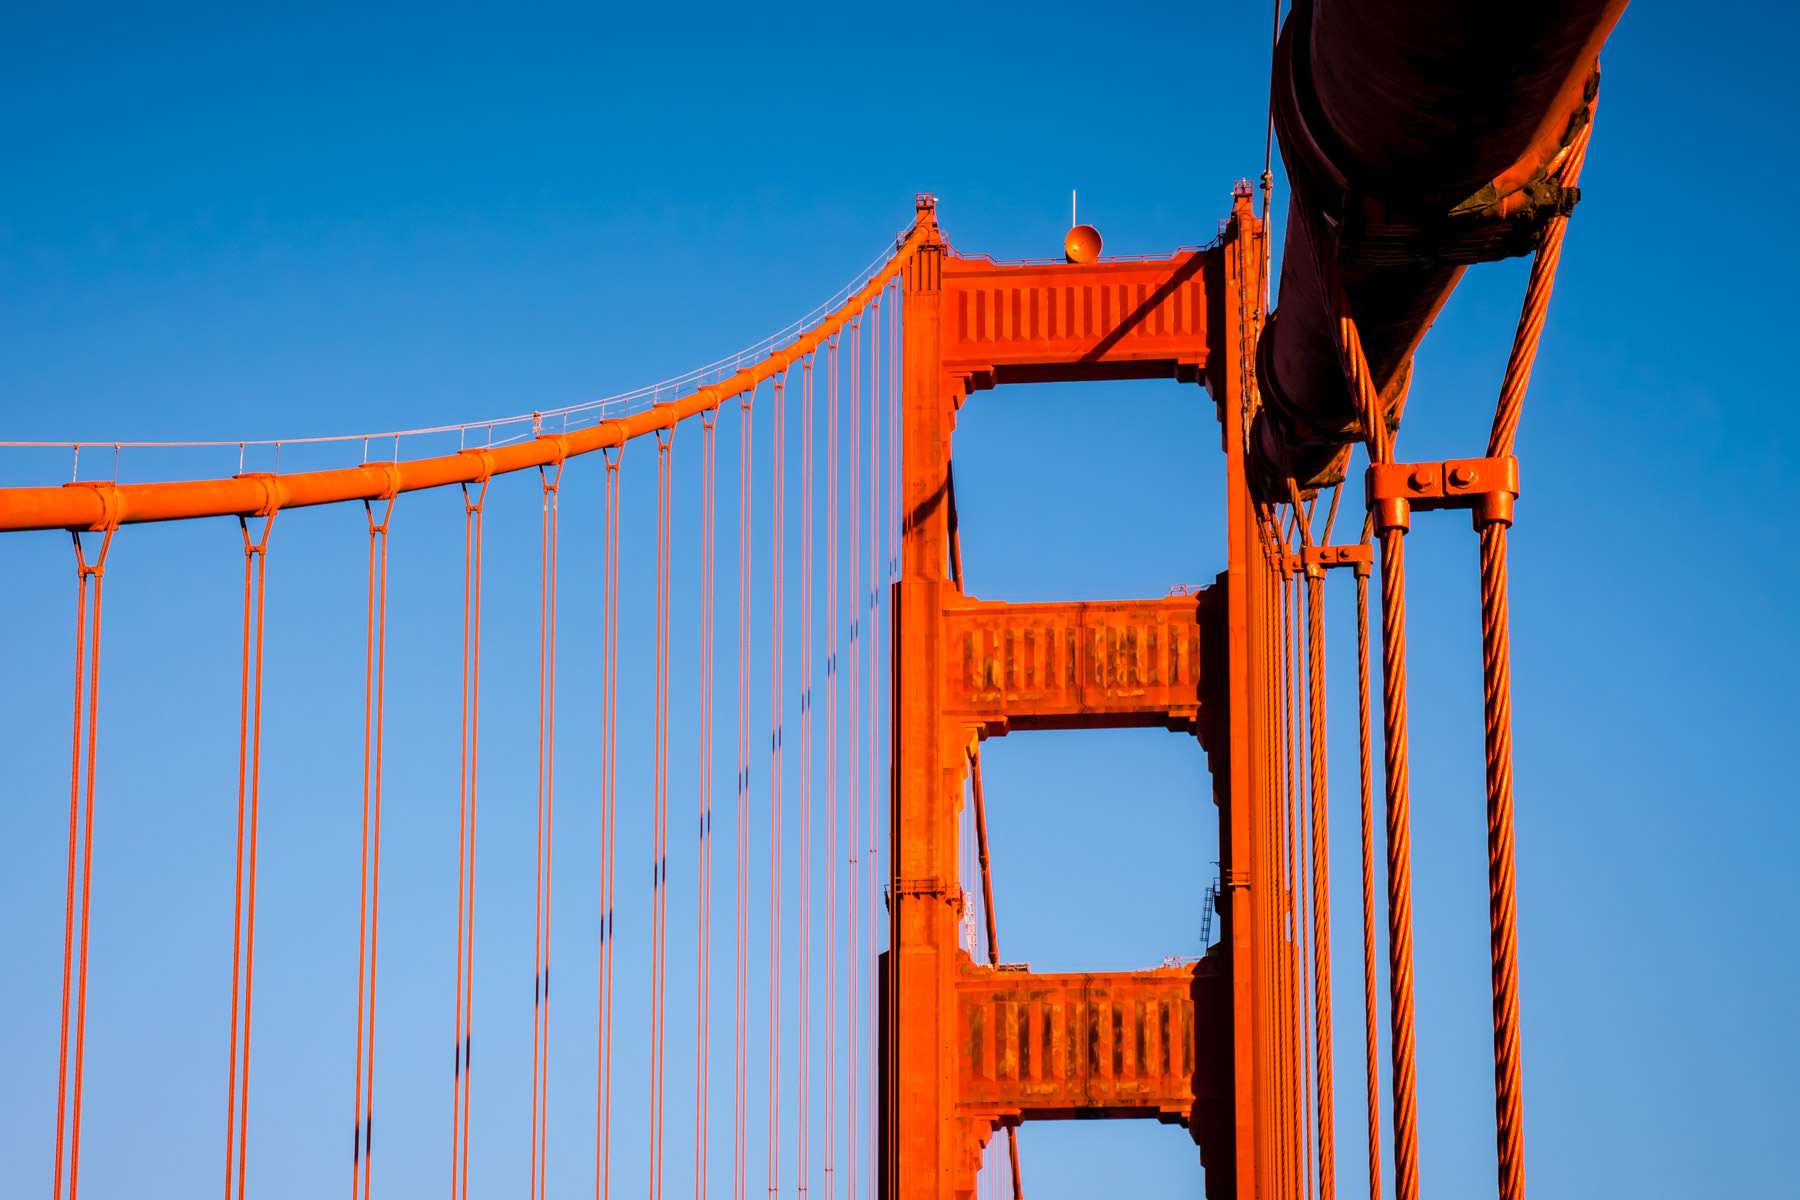 The main suspension cables of San Francisco's Golden Gate Bridge arch up to their anchors at the top of the bridge's south tower. These cables are 36.5-inches-wide (93 cm) and contain 27,572 individual wires.